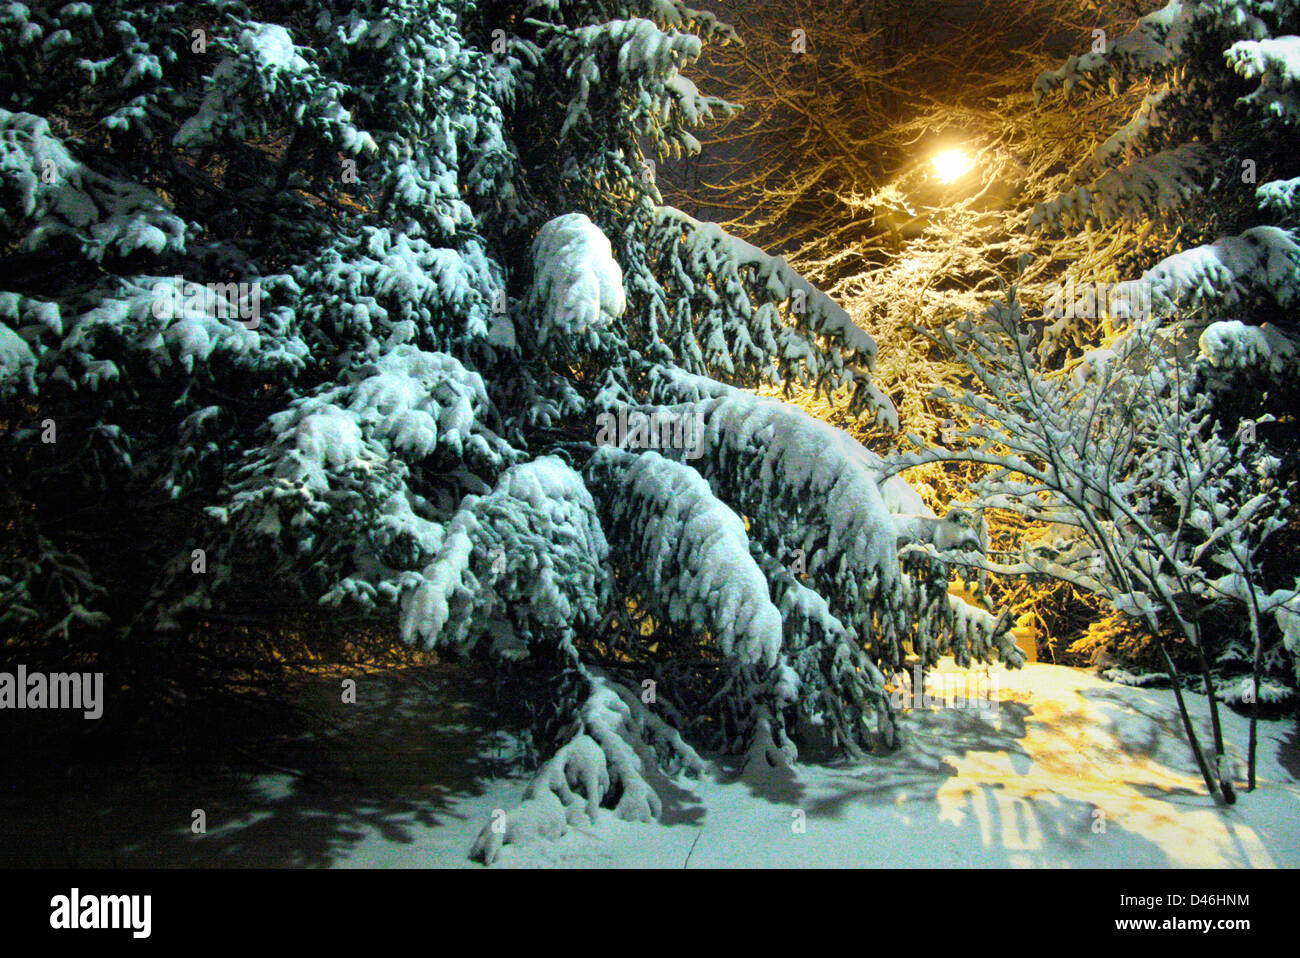 A Night Scene Of Fresh Snowfall On Trees And Tungsten Street Light